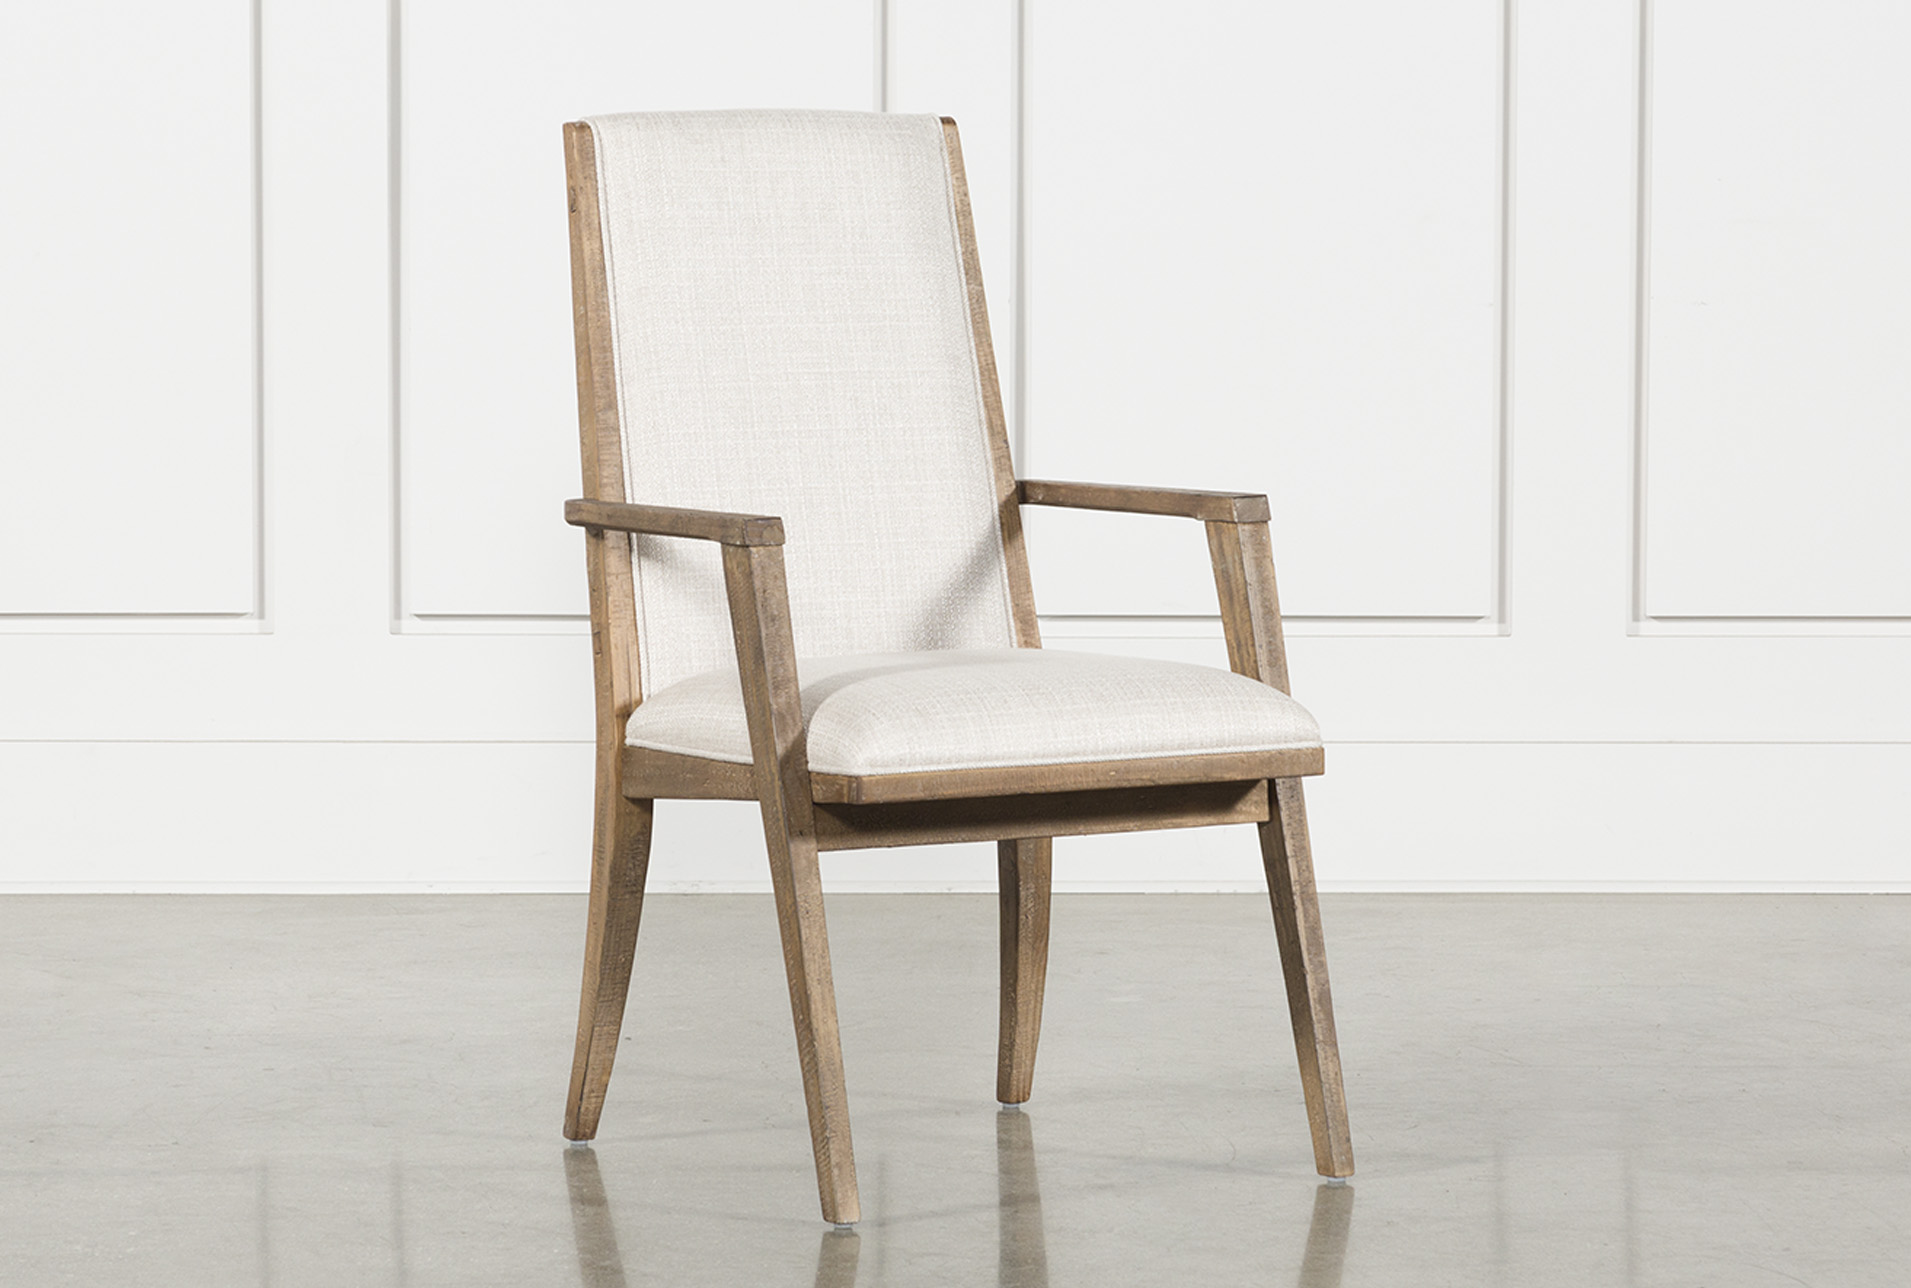 Craftsman Arm Chair (Qty: 1) Has Been Successfully Added To Your Cart.